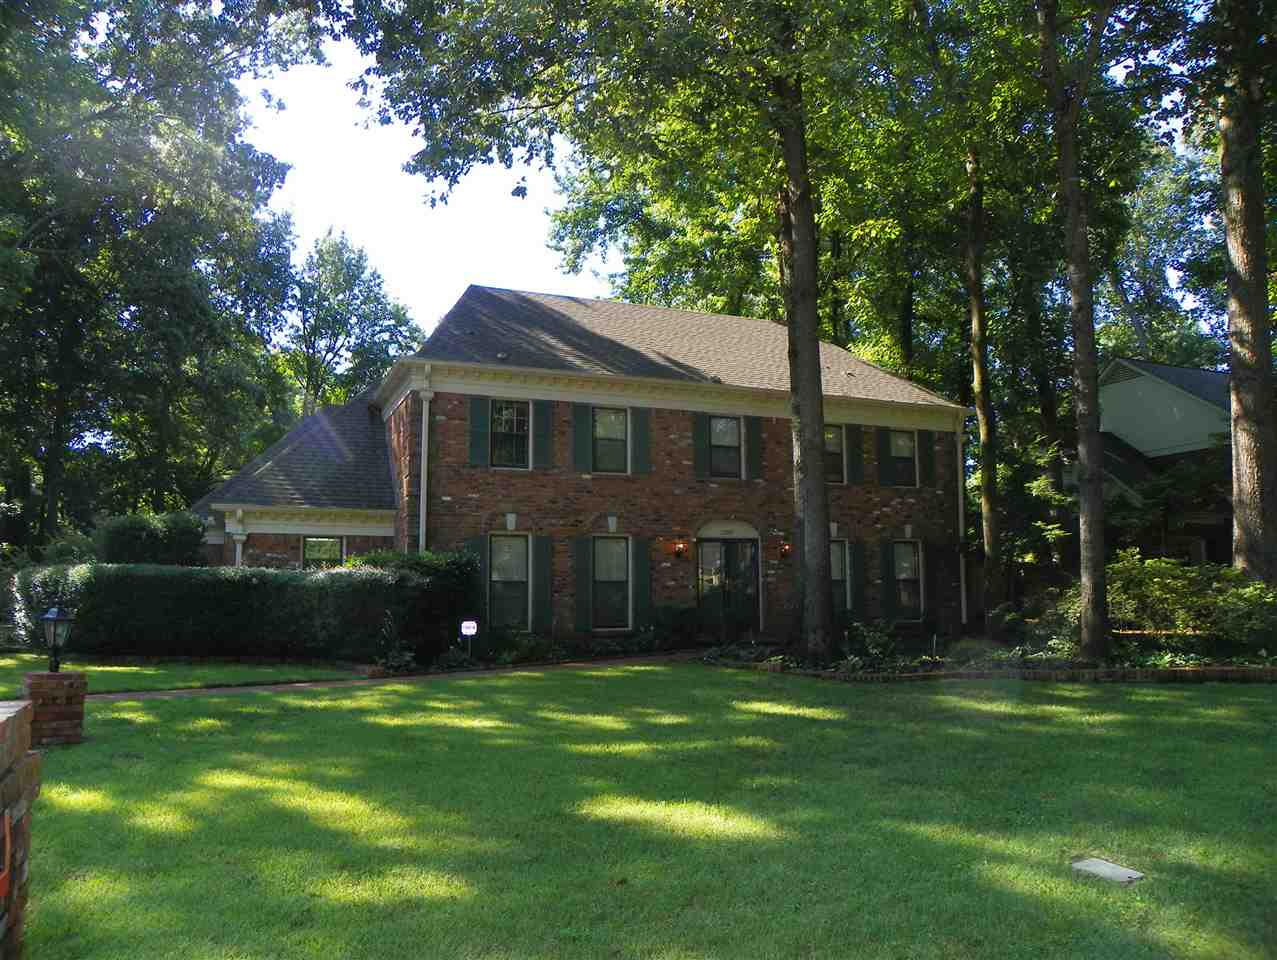 2268 Lansingwood Germantown, TN 38139 - MLS #: 10006148